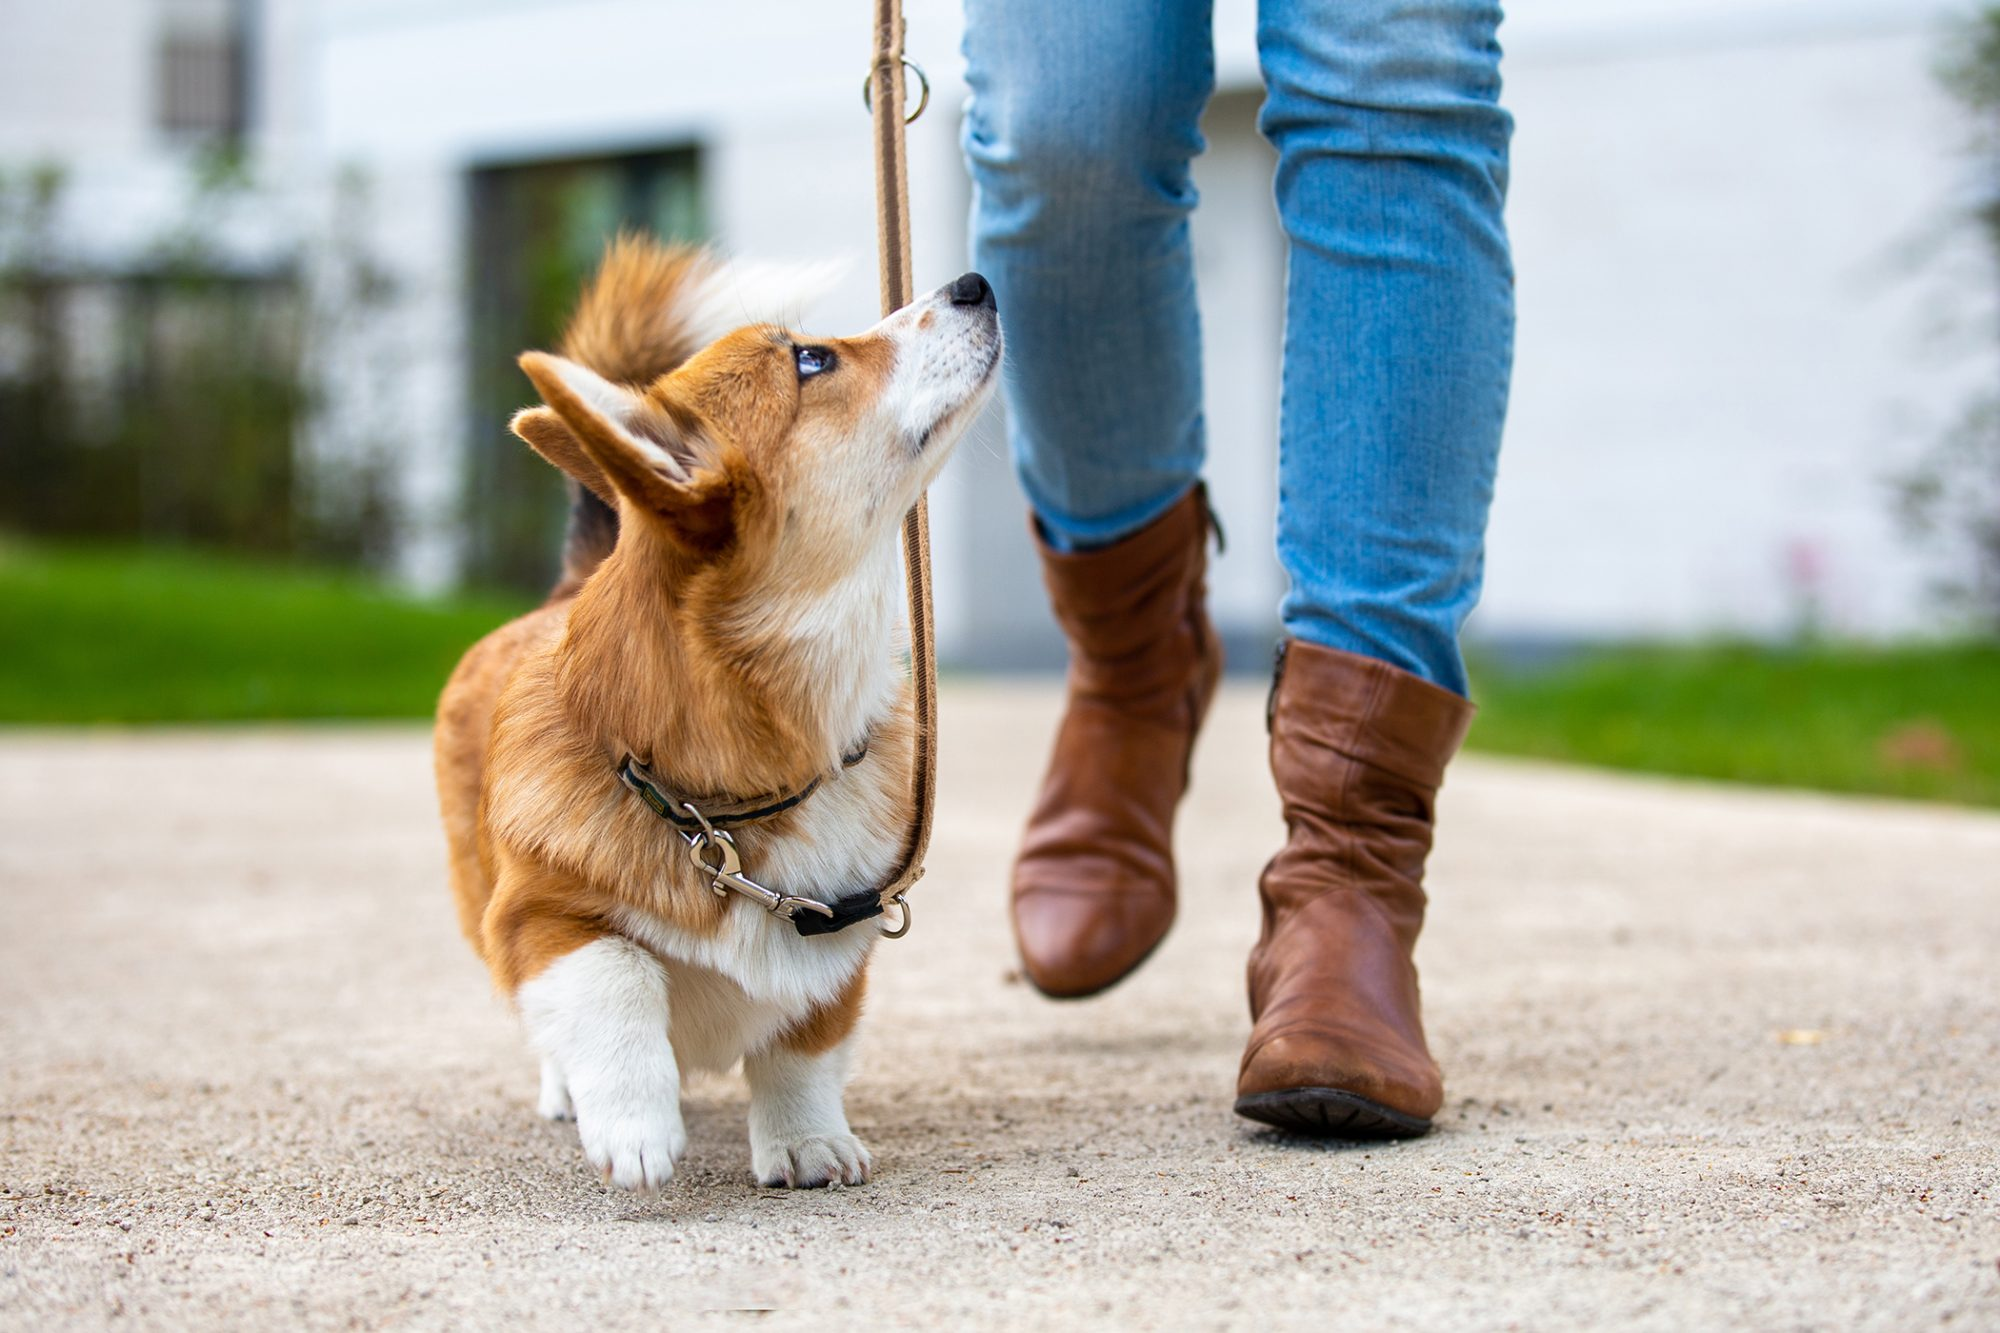 Corgi puppy on leash looks up at owner while on walk